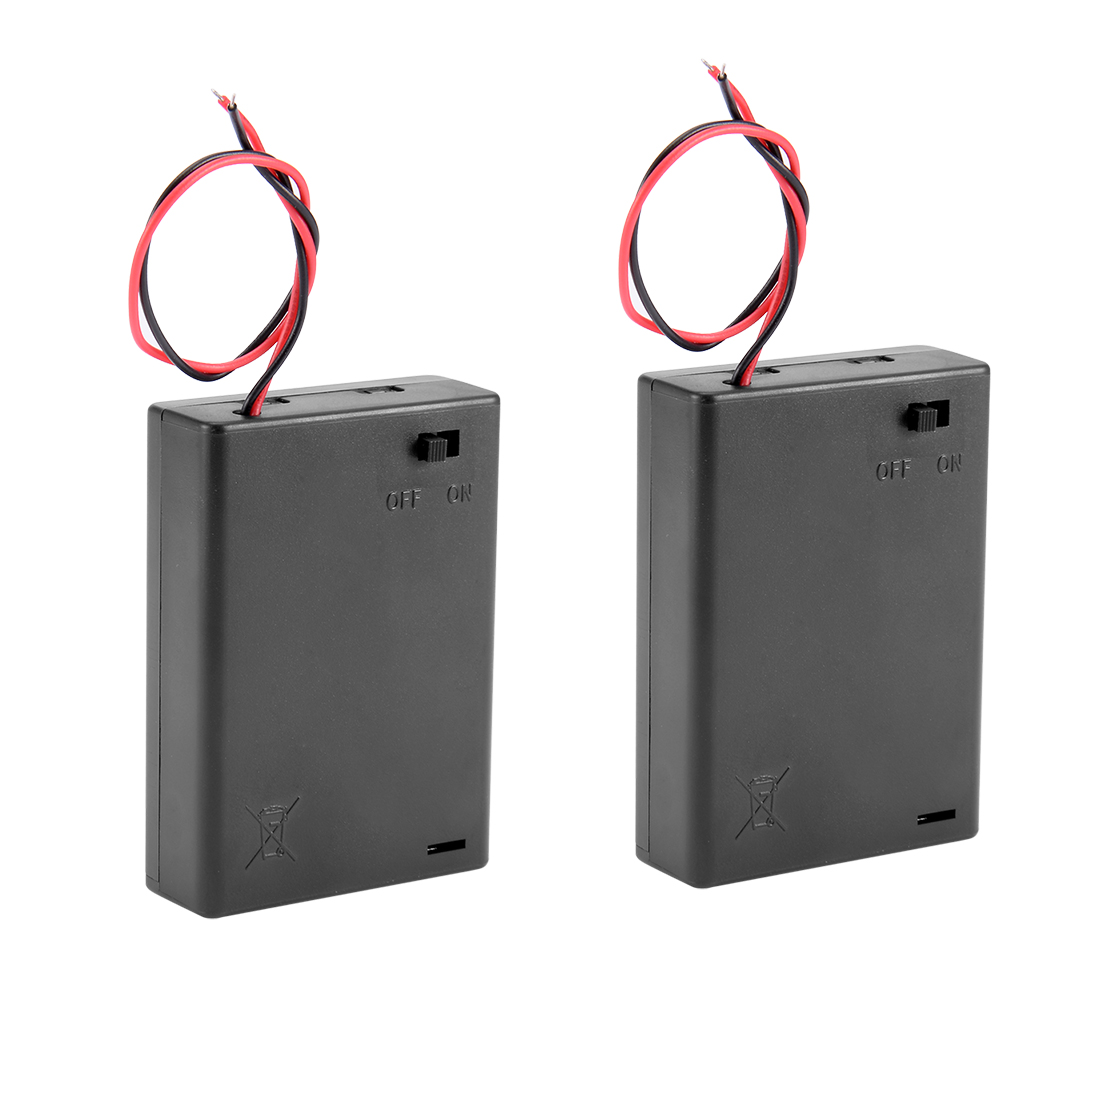 2 Pcs Wired ON/OFF Switch 3 x AA 4.5V Battery Holder Case w Cover